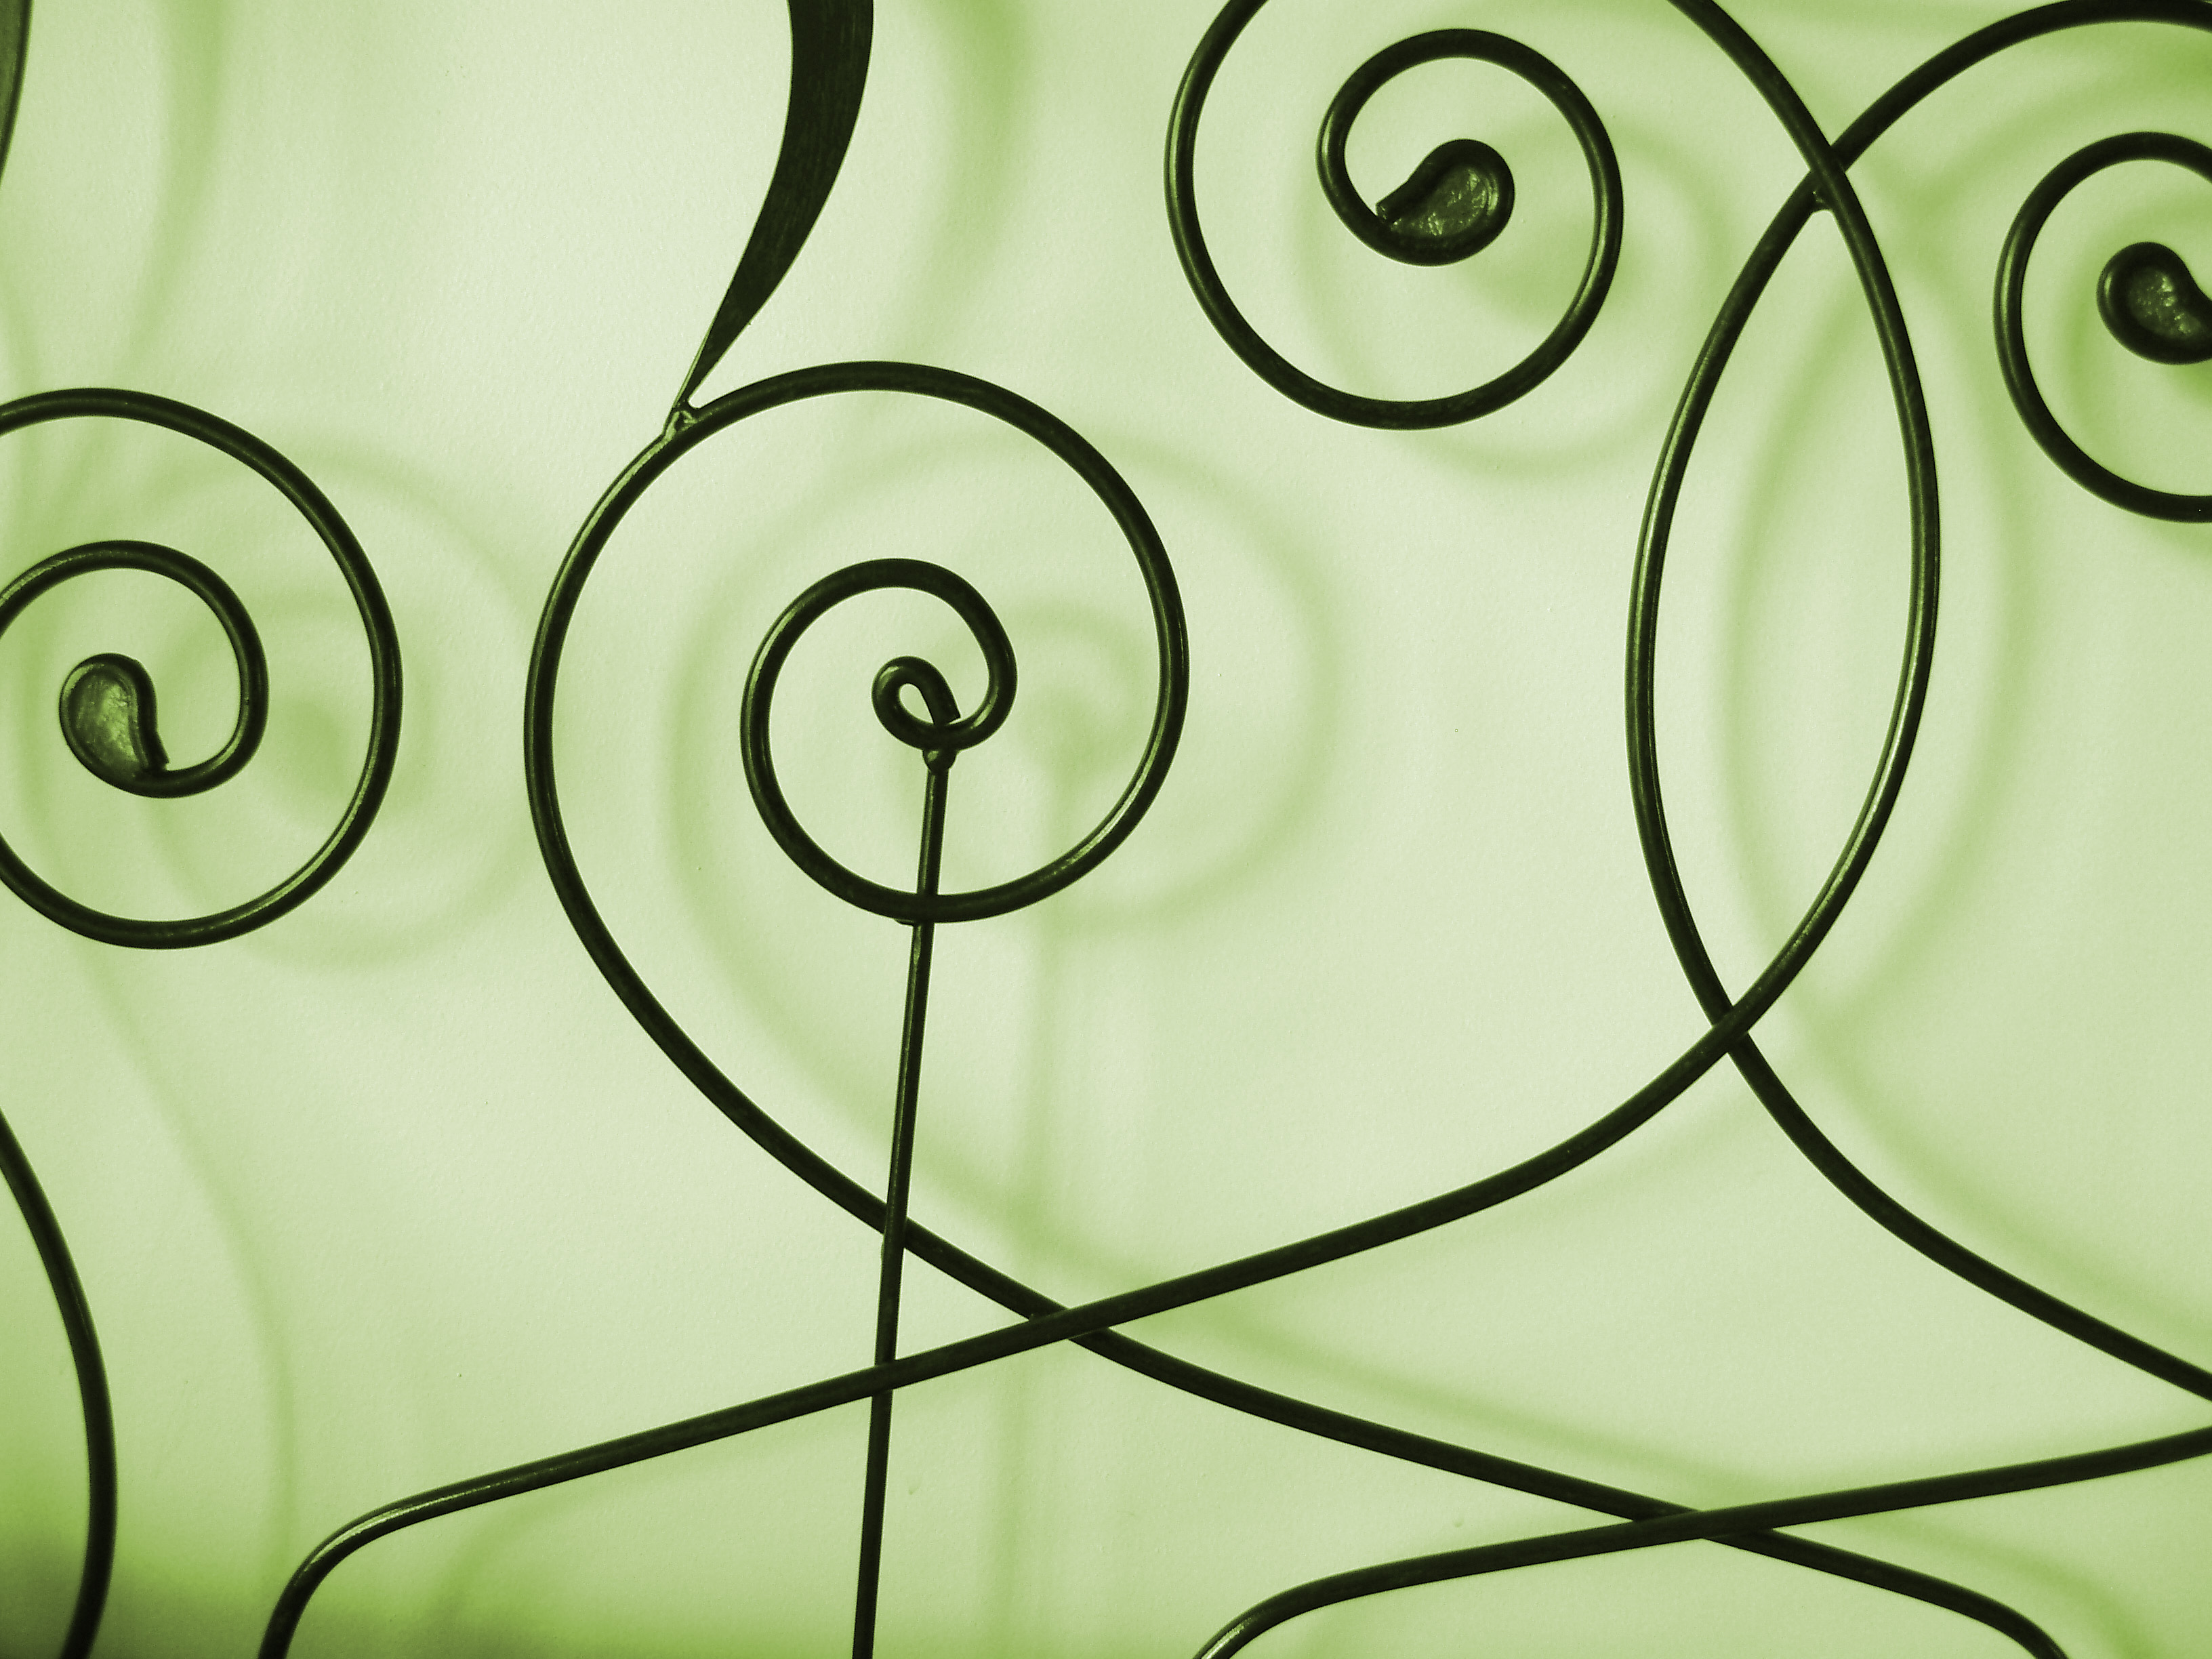 arabesque metal shapes on a green background with shadows